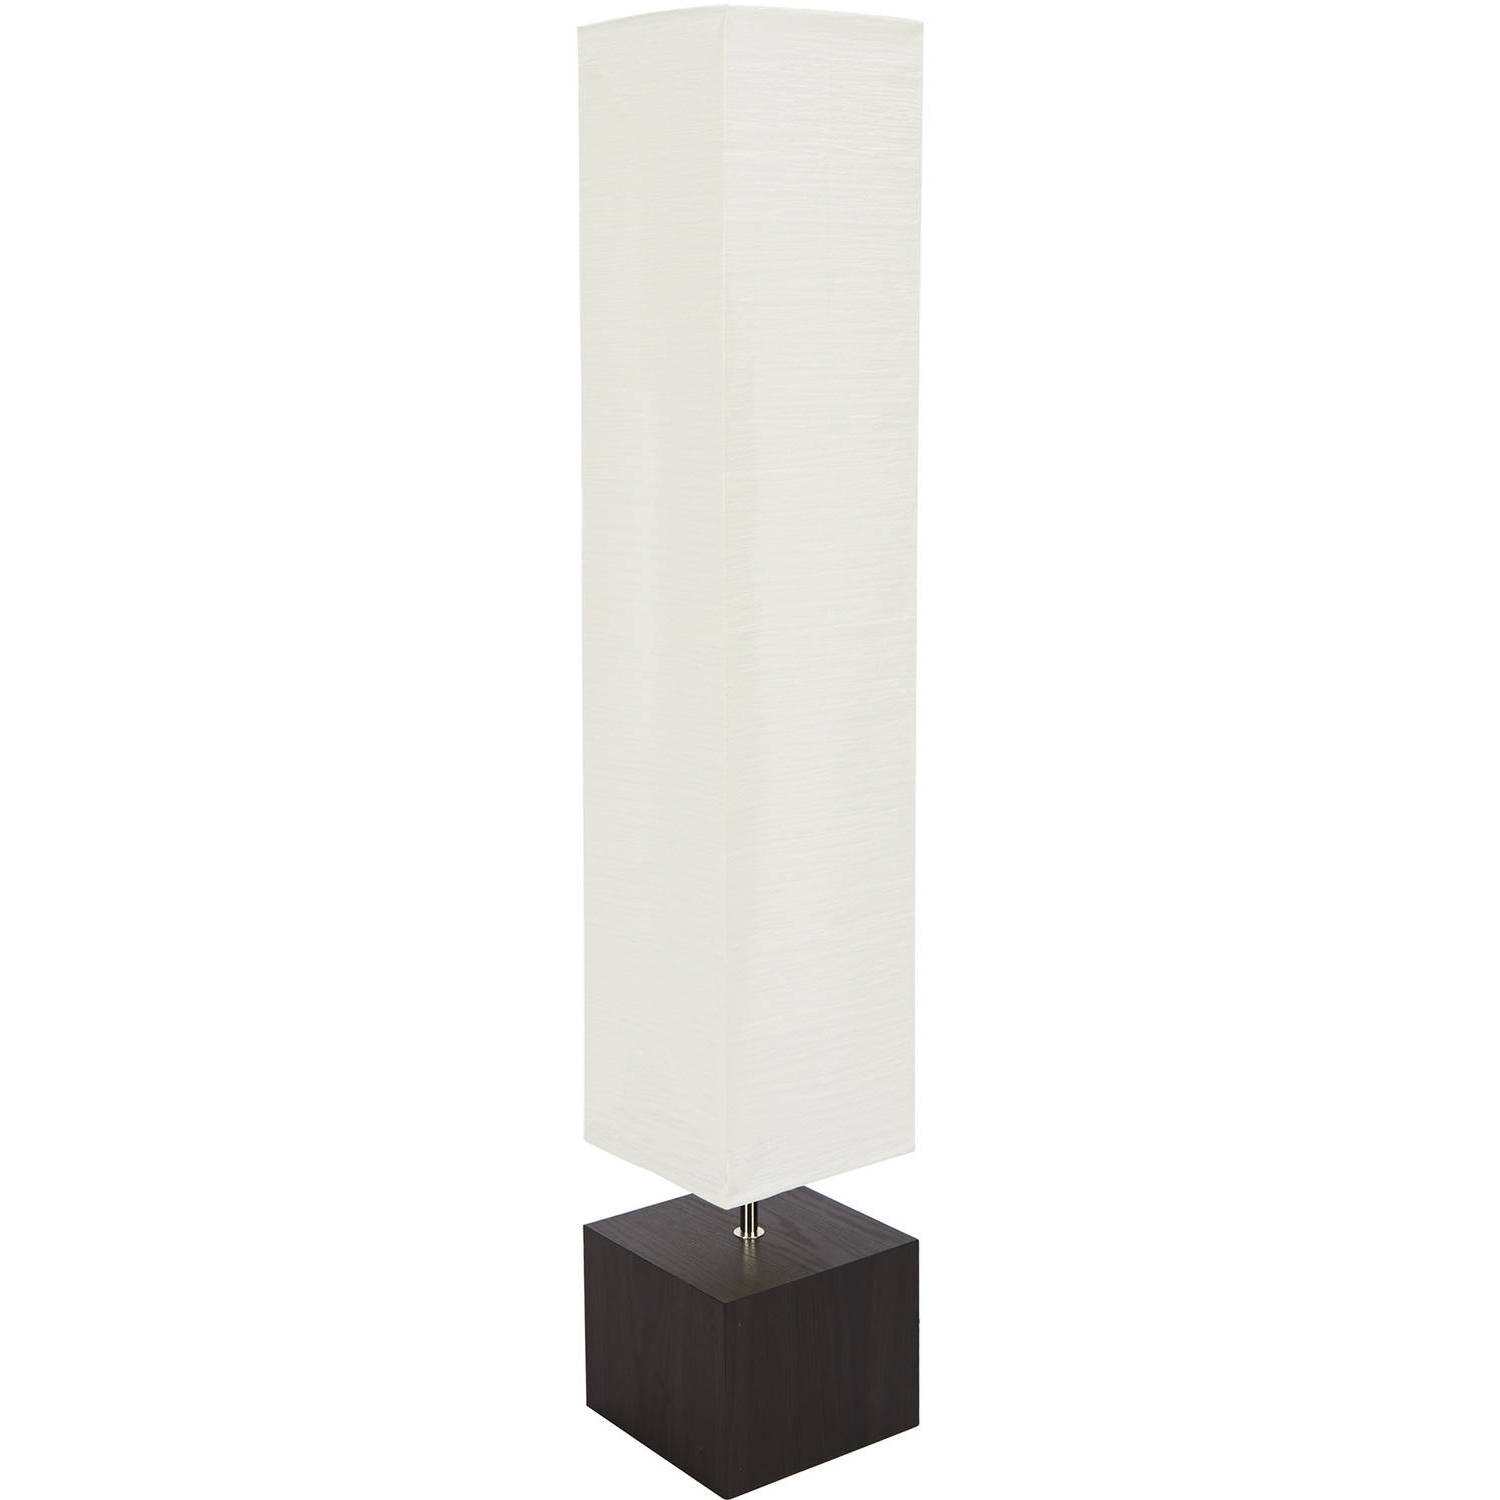 Mainstays White Rice Paper Floor Lamp With Dark Wood Base Image 3 Of 3